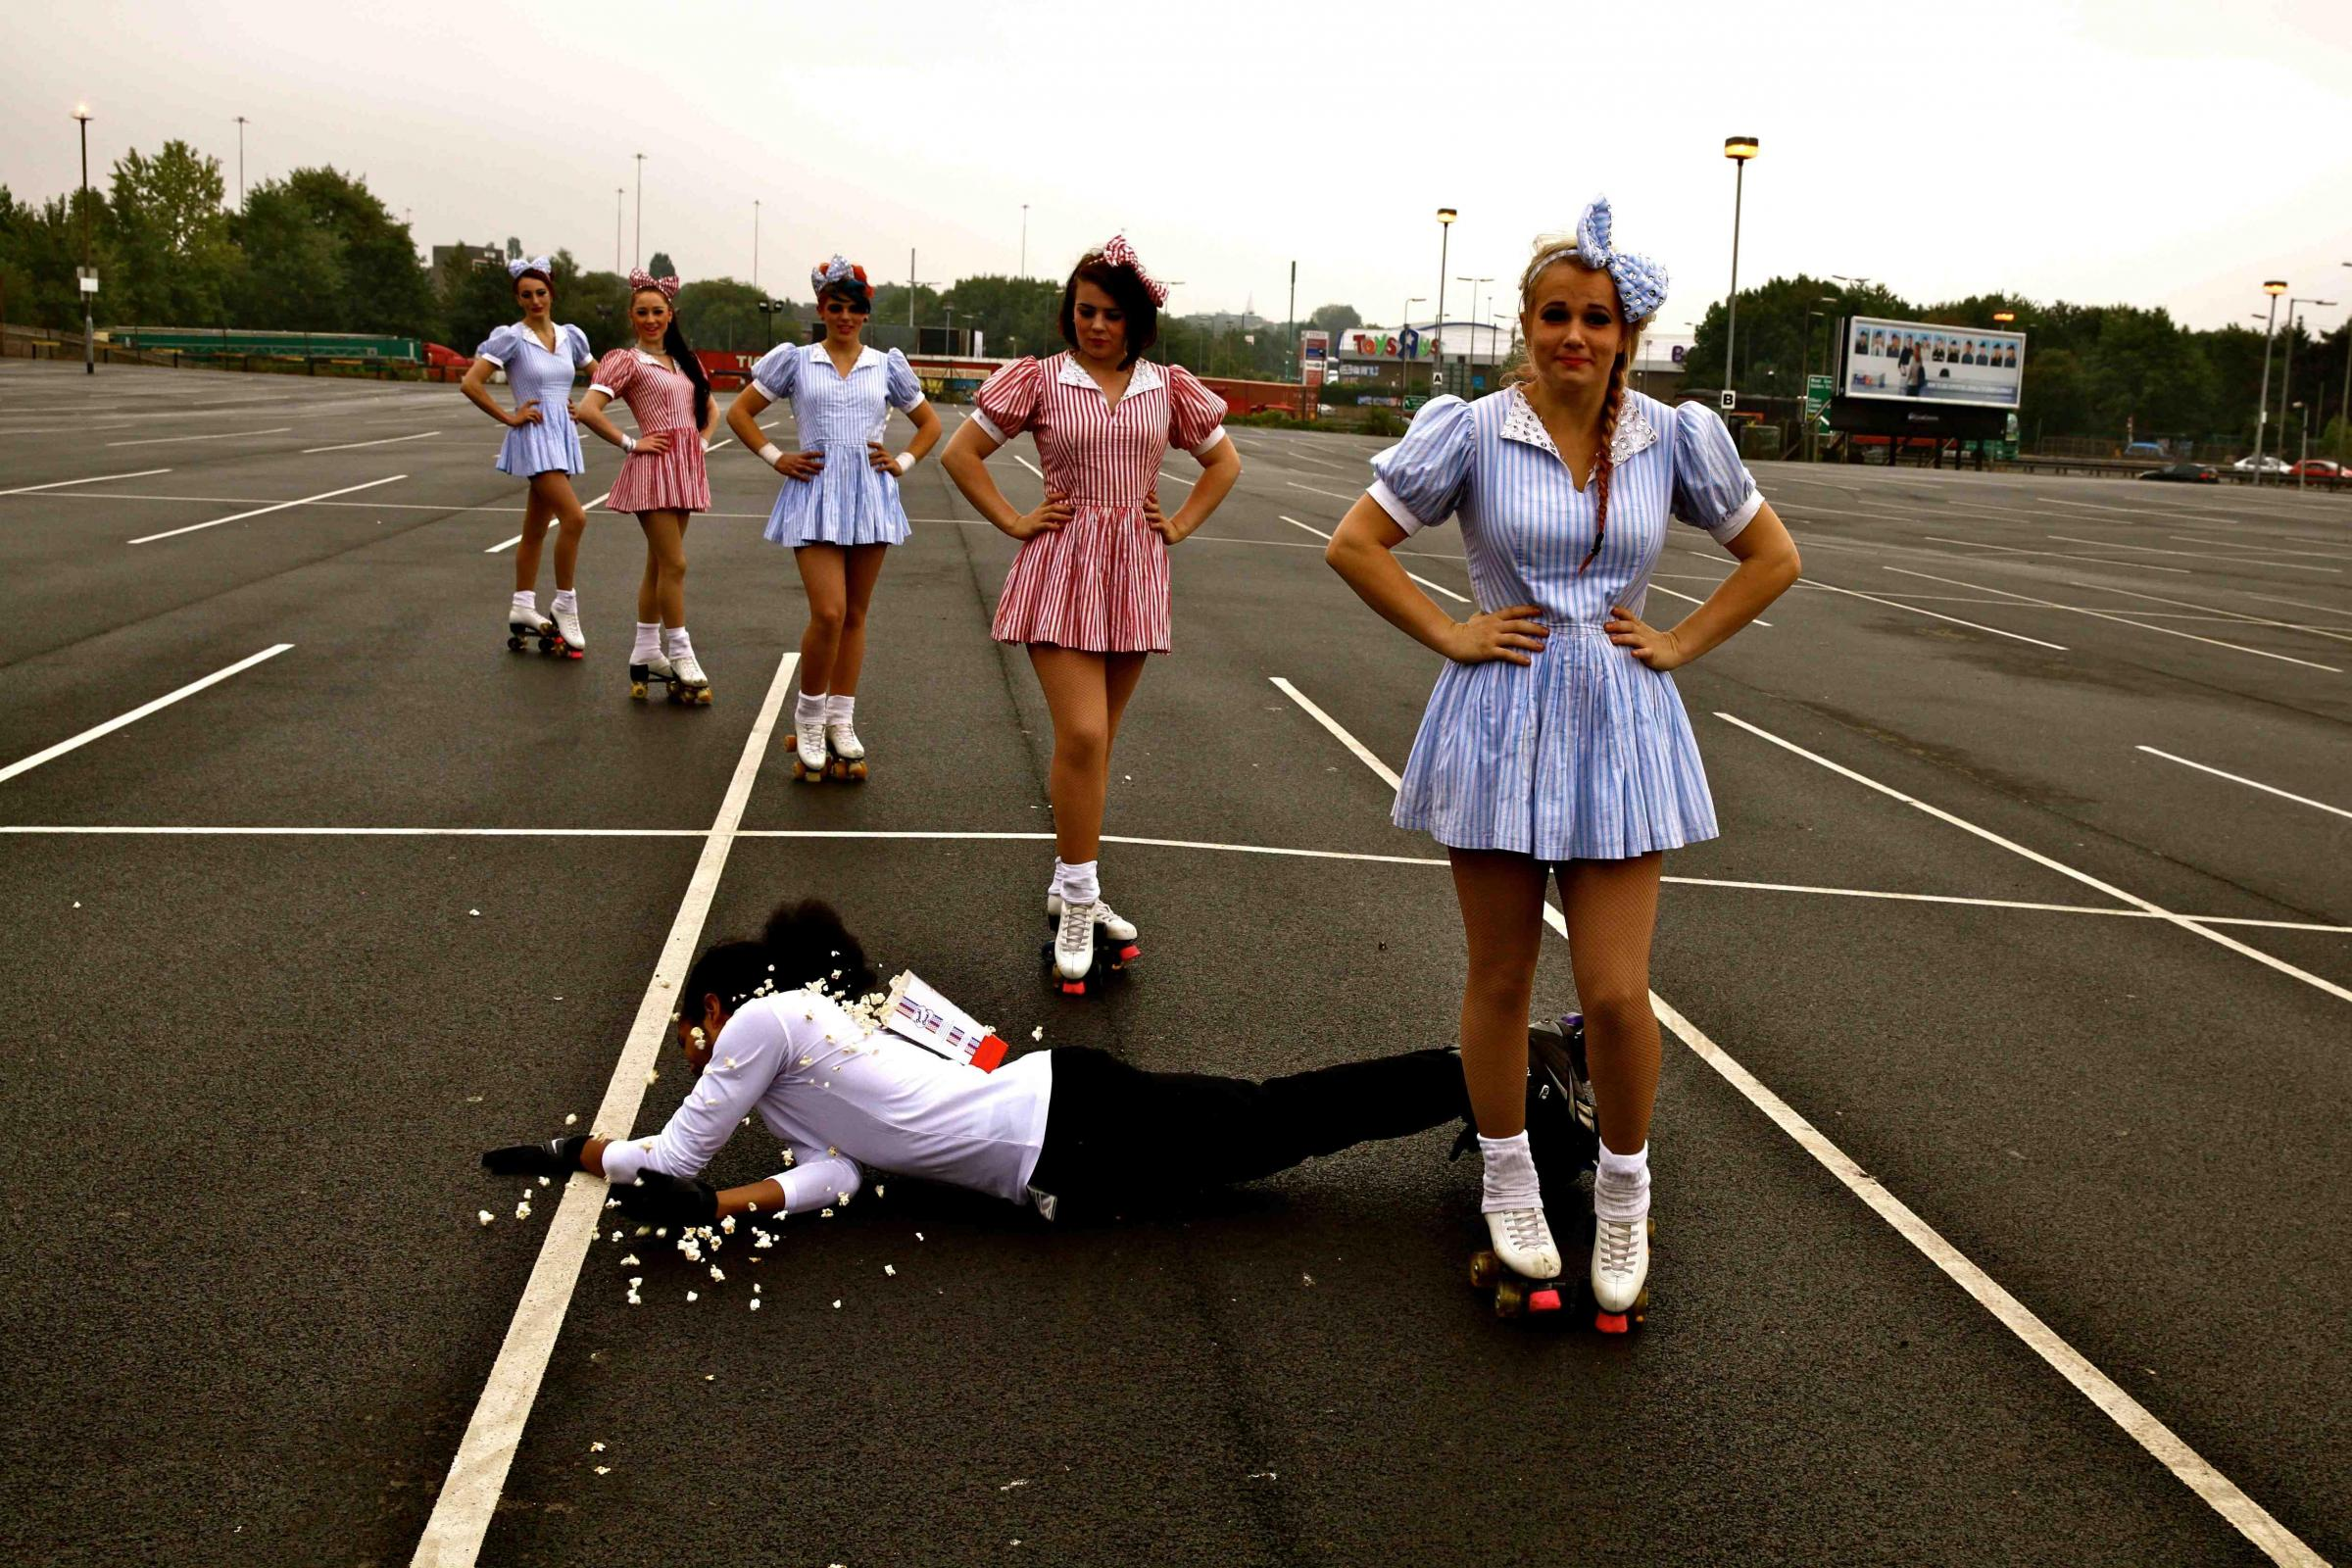 The drive-in cinema firm held auditions for roller-blading waitresses at